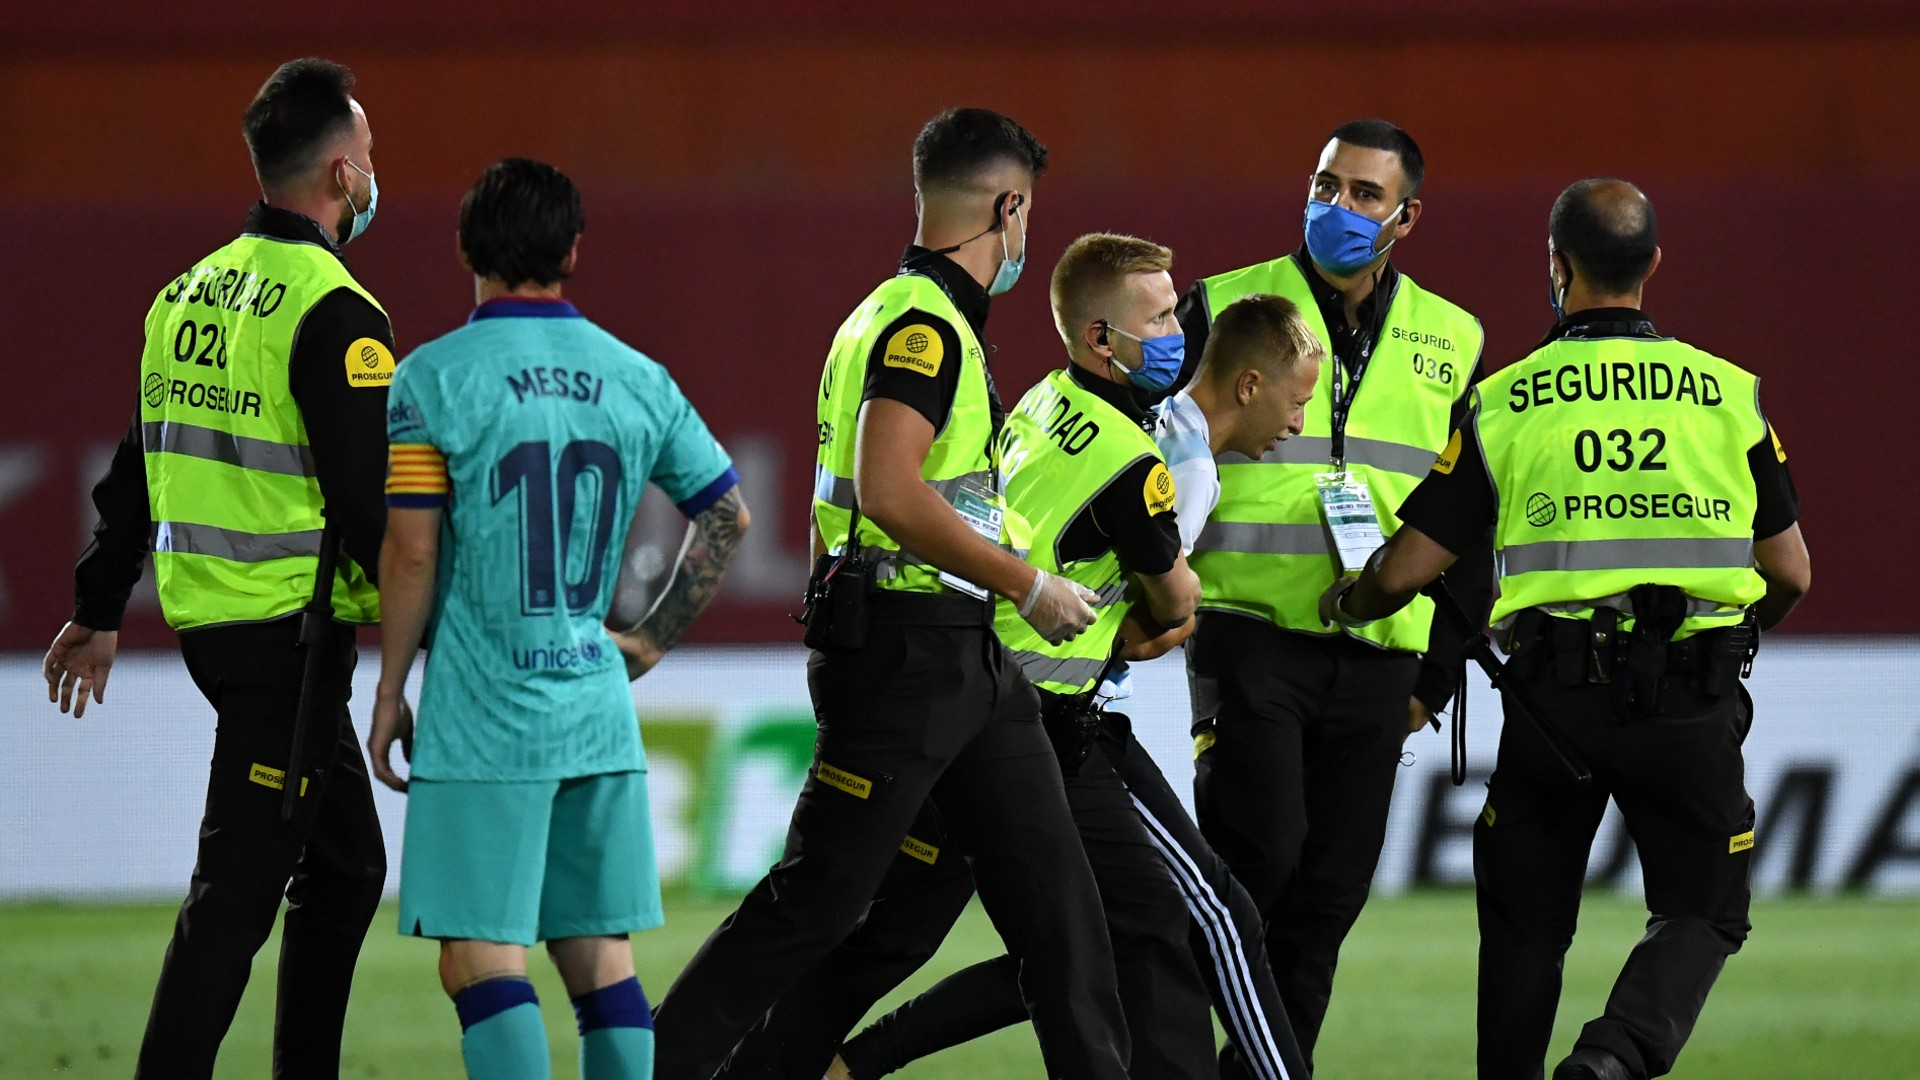 Messi-chasing pitch invader faces stiff punishment after breaking coronavirus protocol